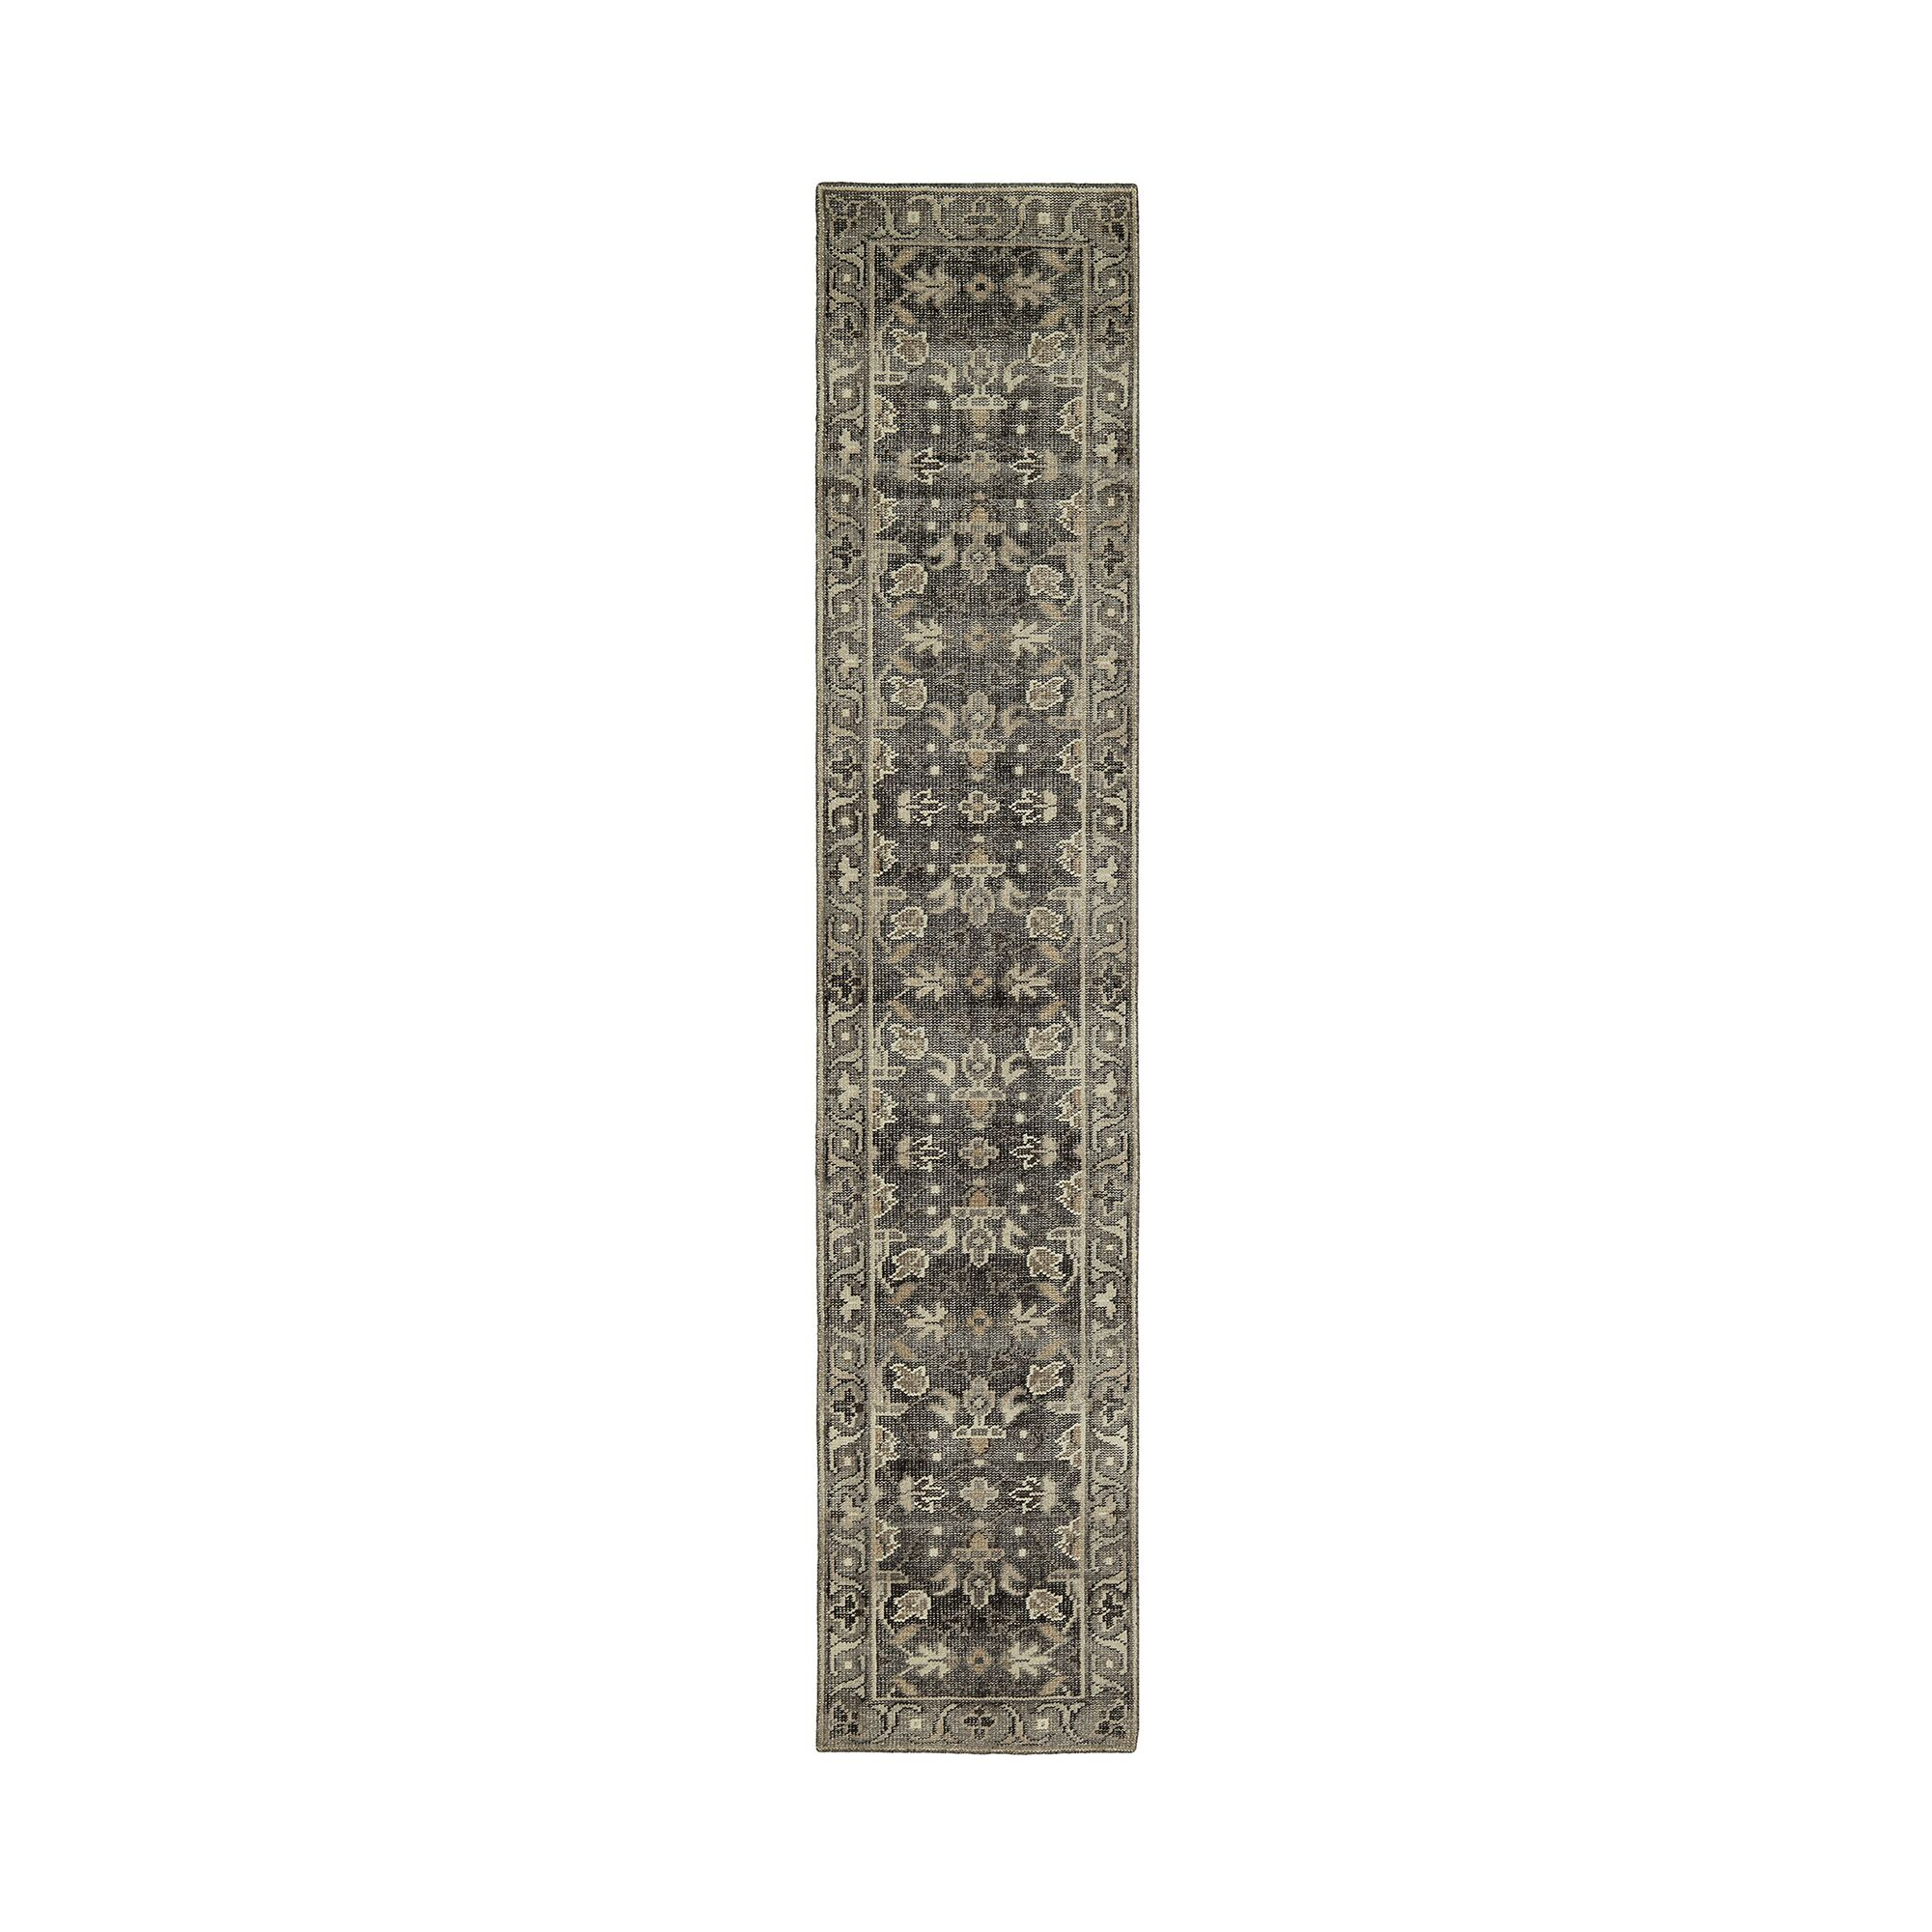 Romeo Hand-Knotted Wool Charcoal Area Rug Rug Size: Runner 2'6